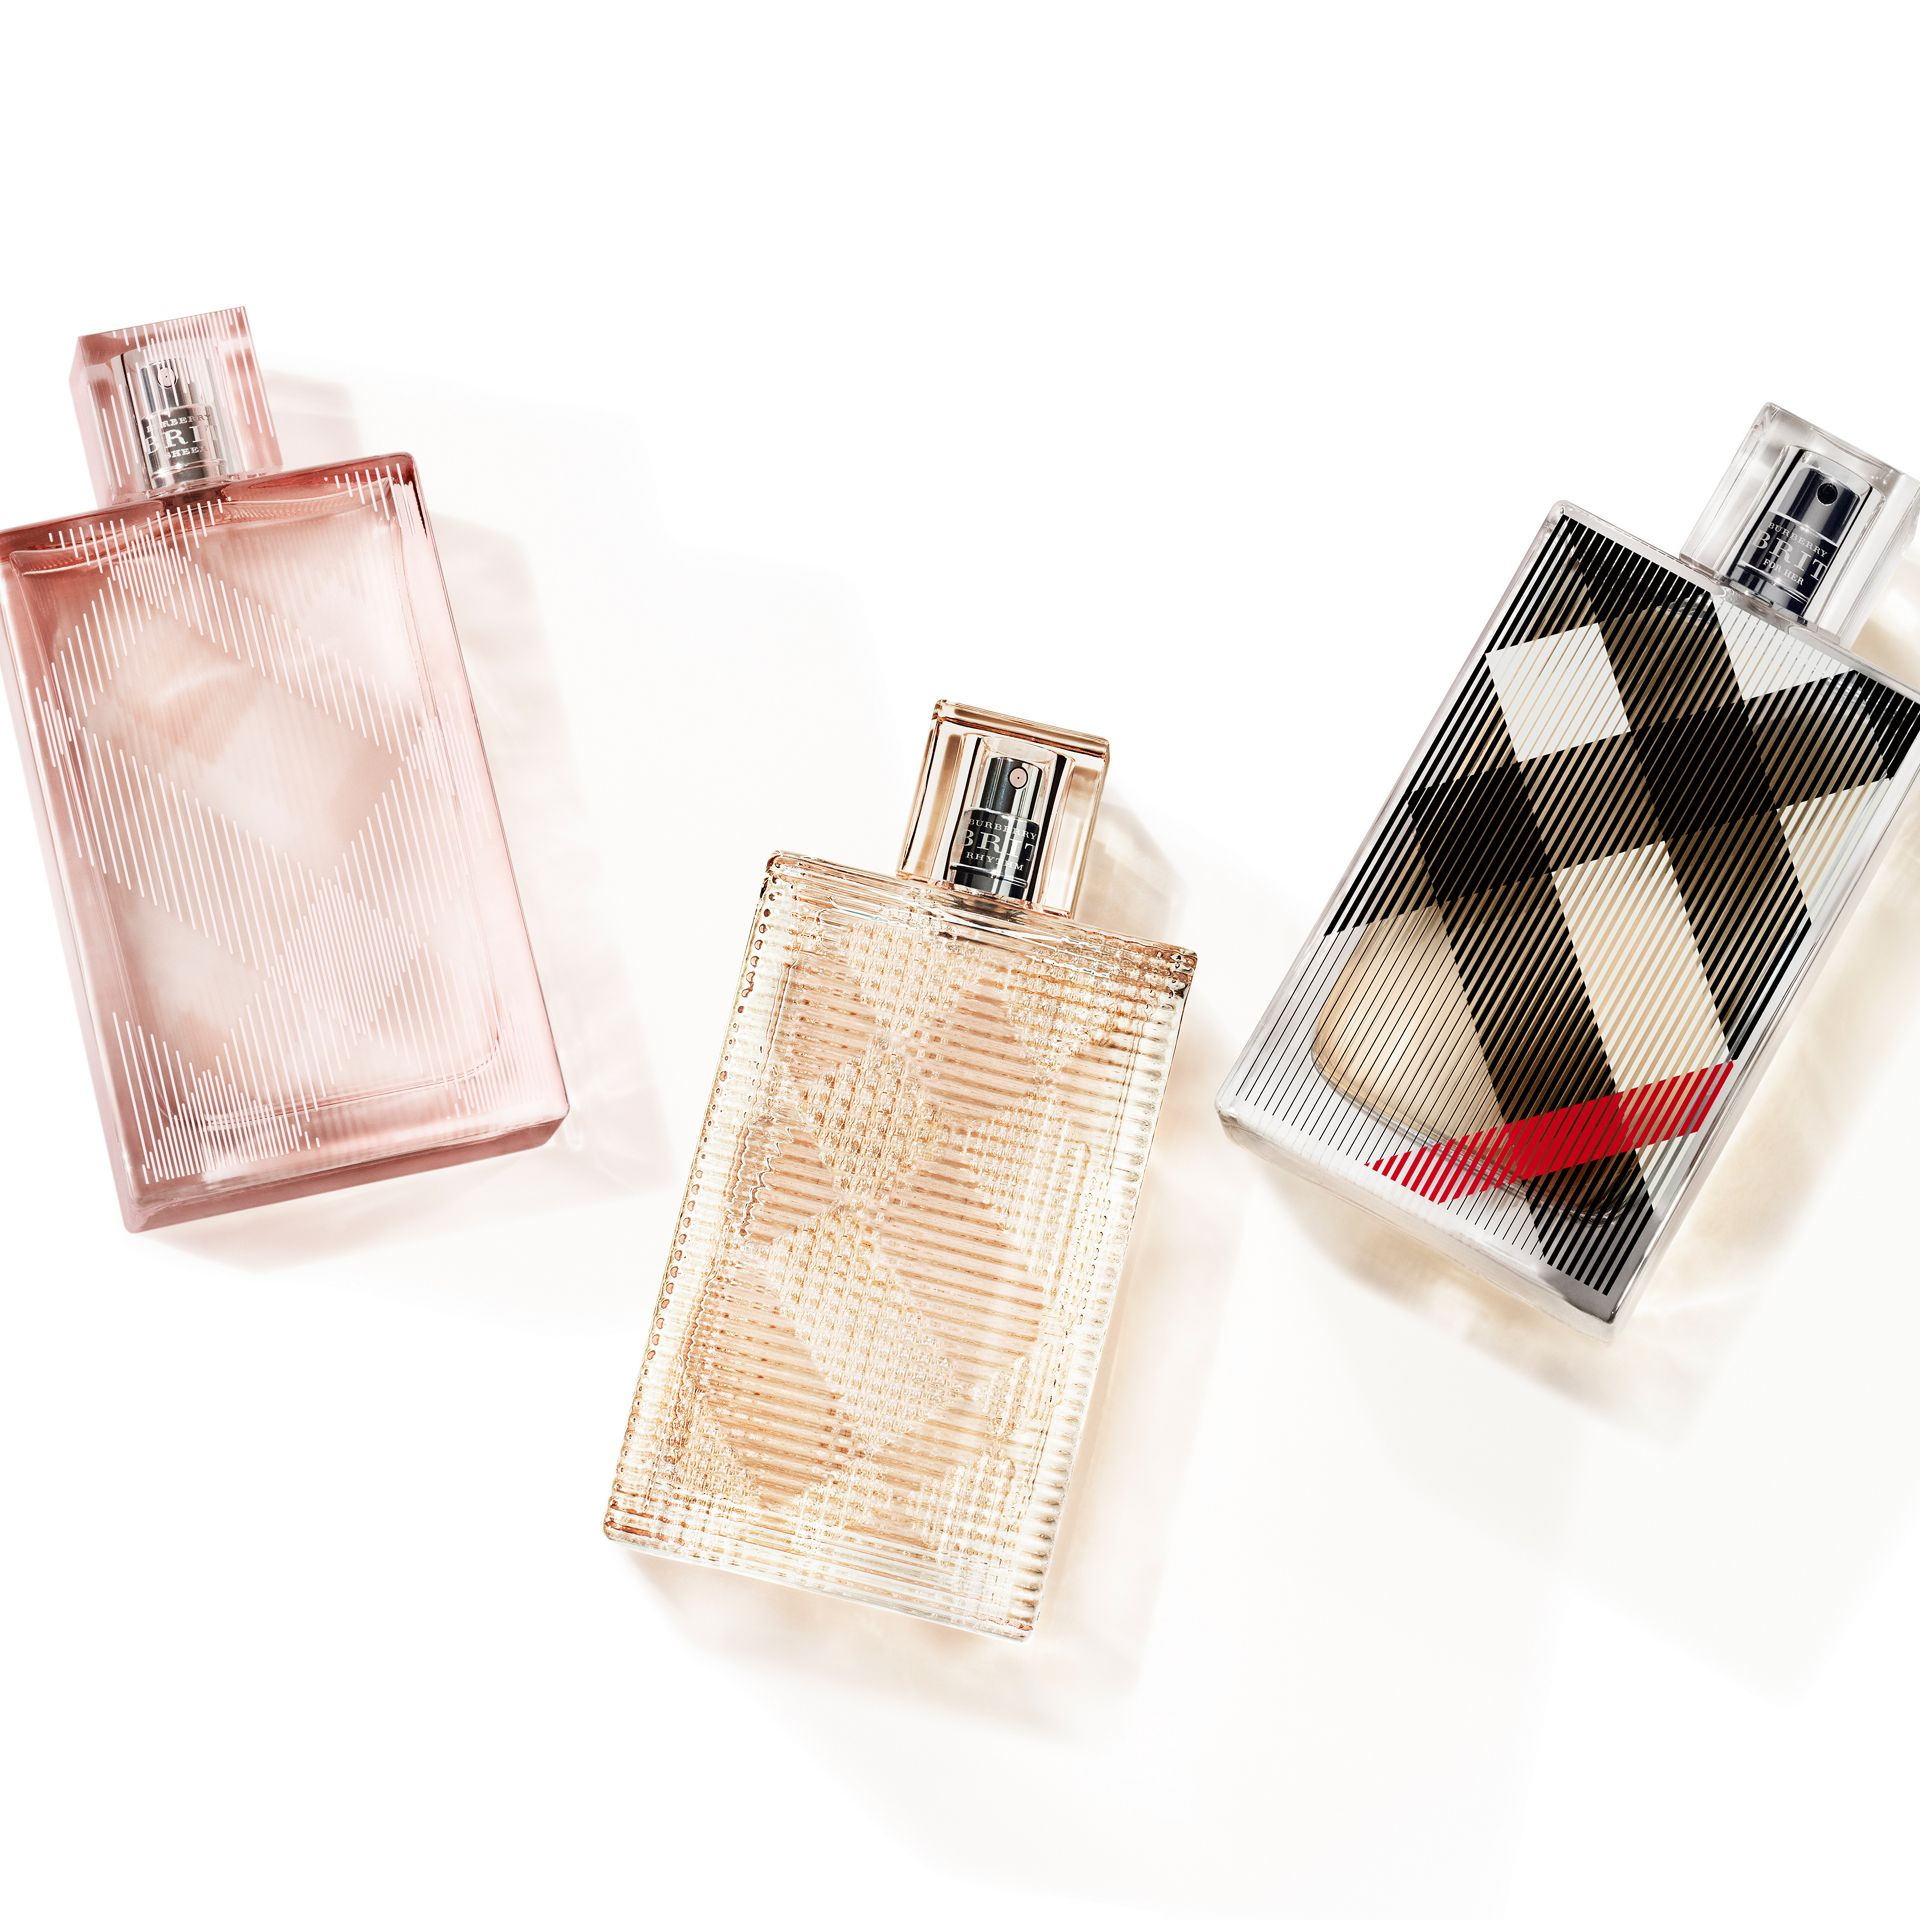 Burberry Brit Sheer Eau de Toilette 200ml - Women | Burberry Singapore - gallery image 2